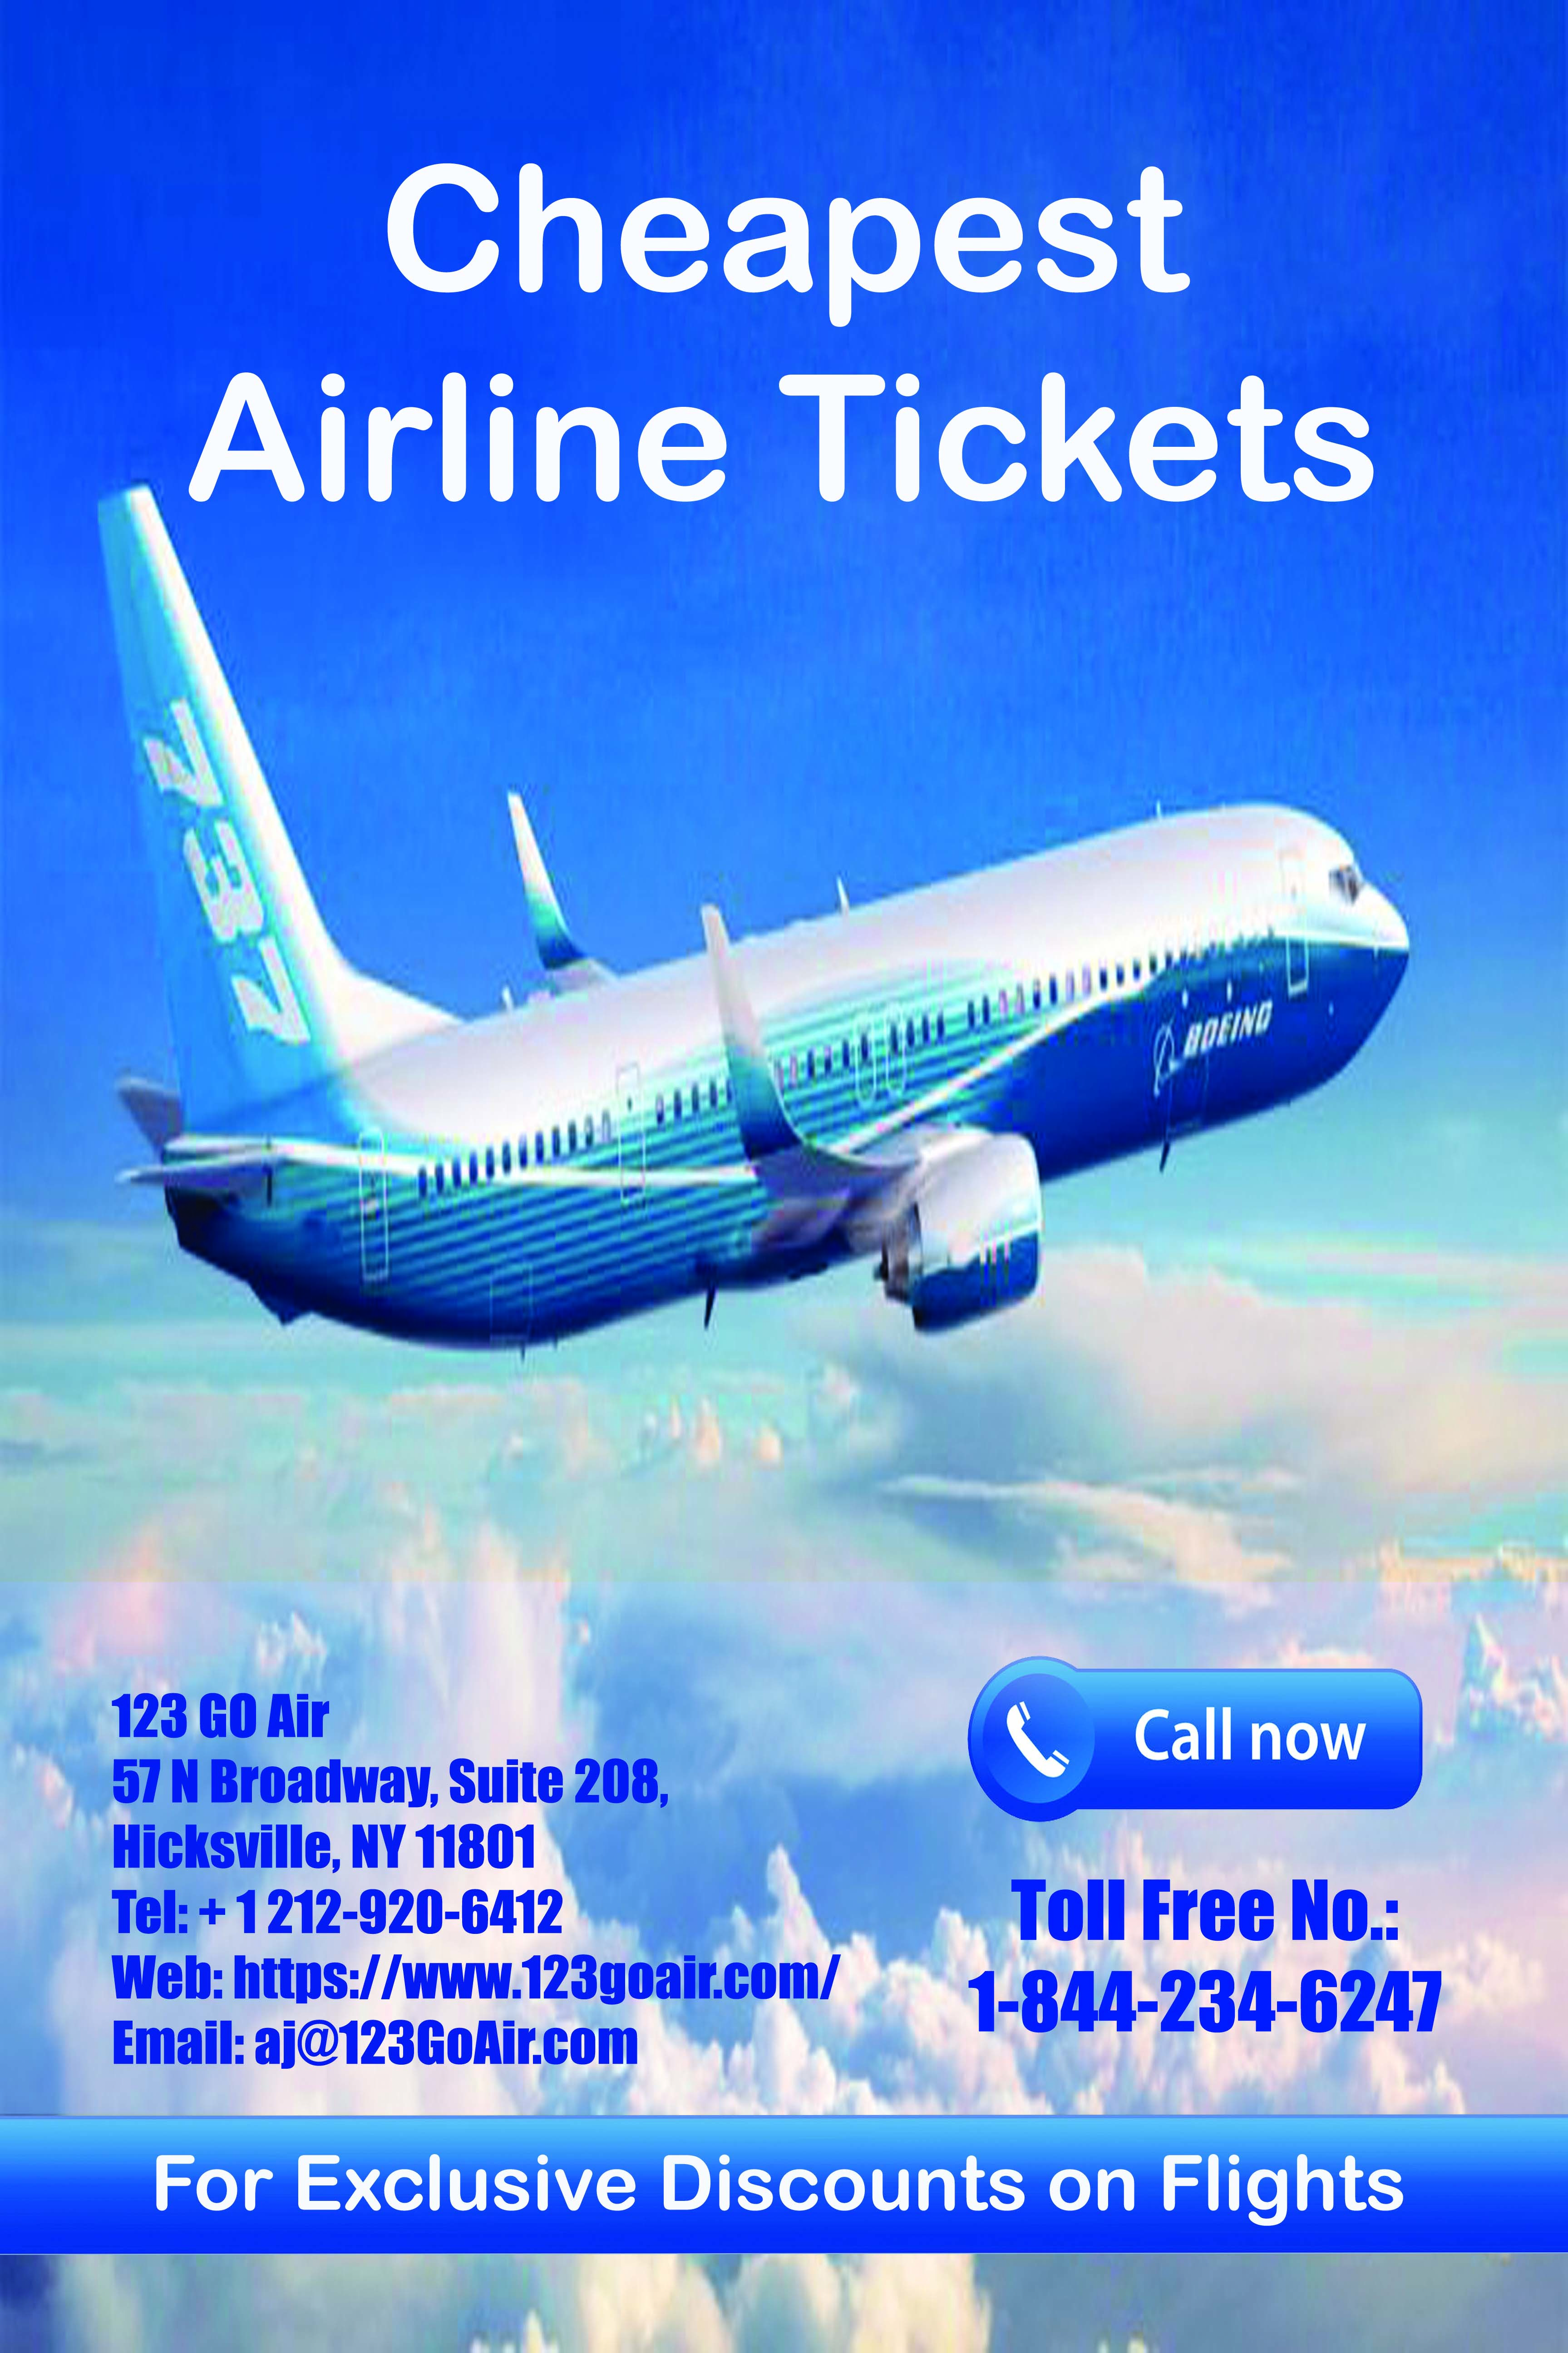 Exclusive Discount on Flights Call Now for Cheapest Air